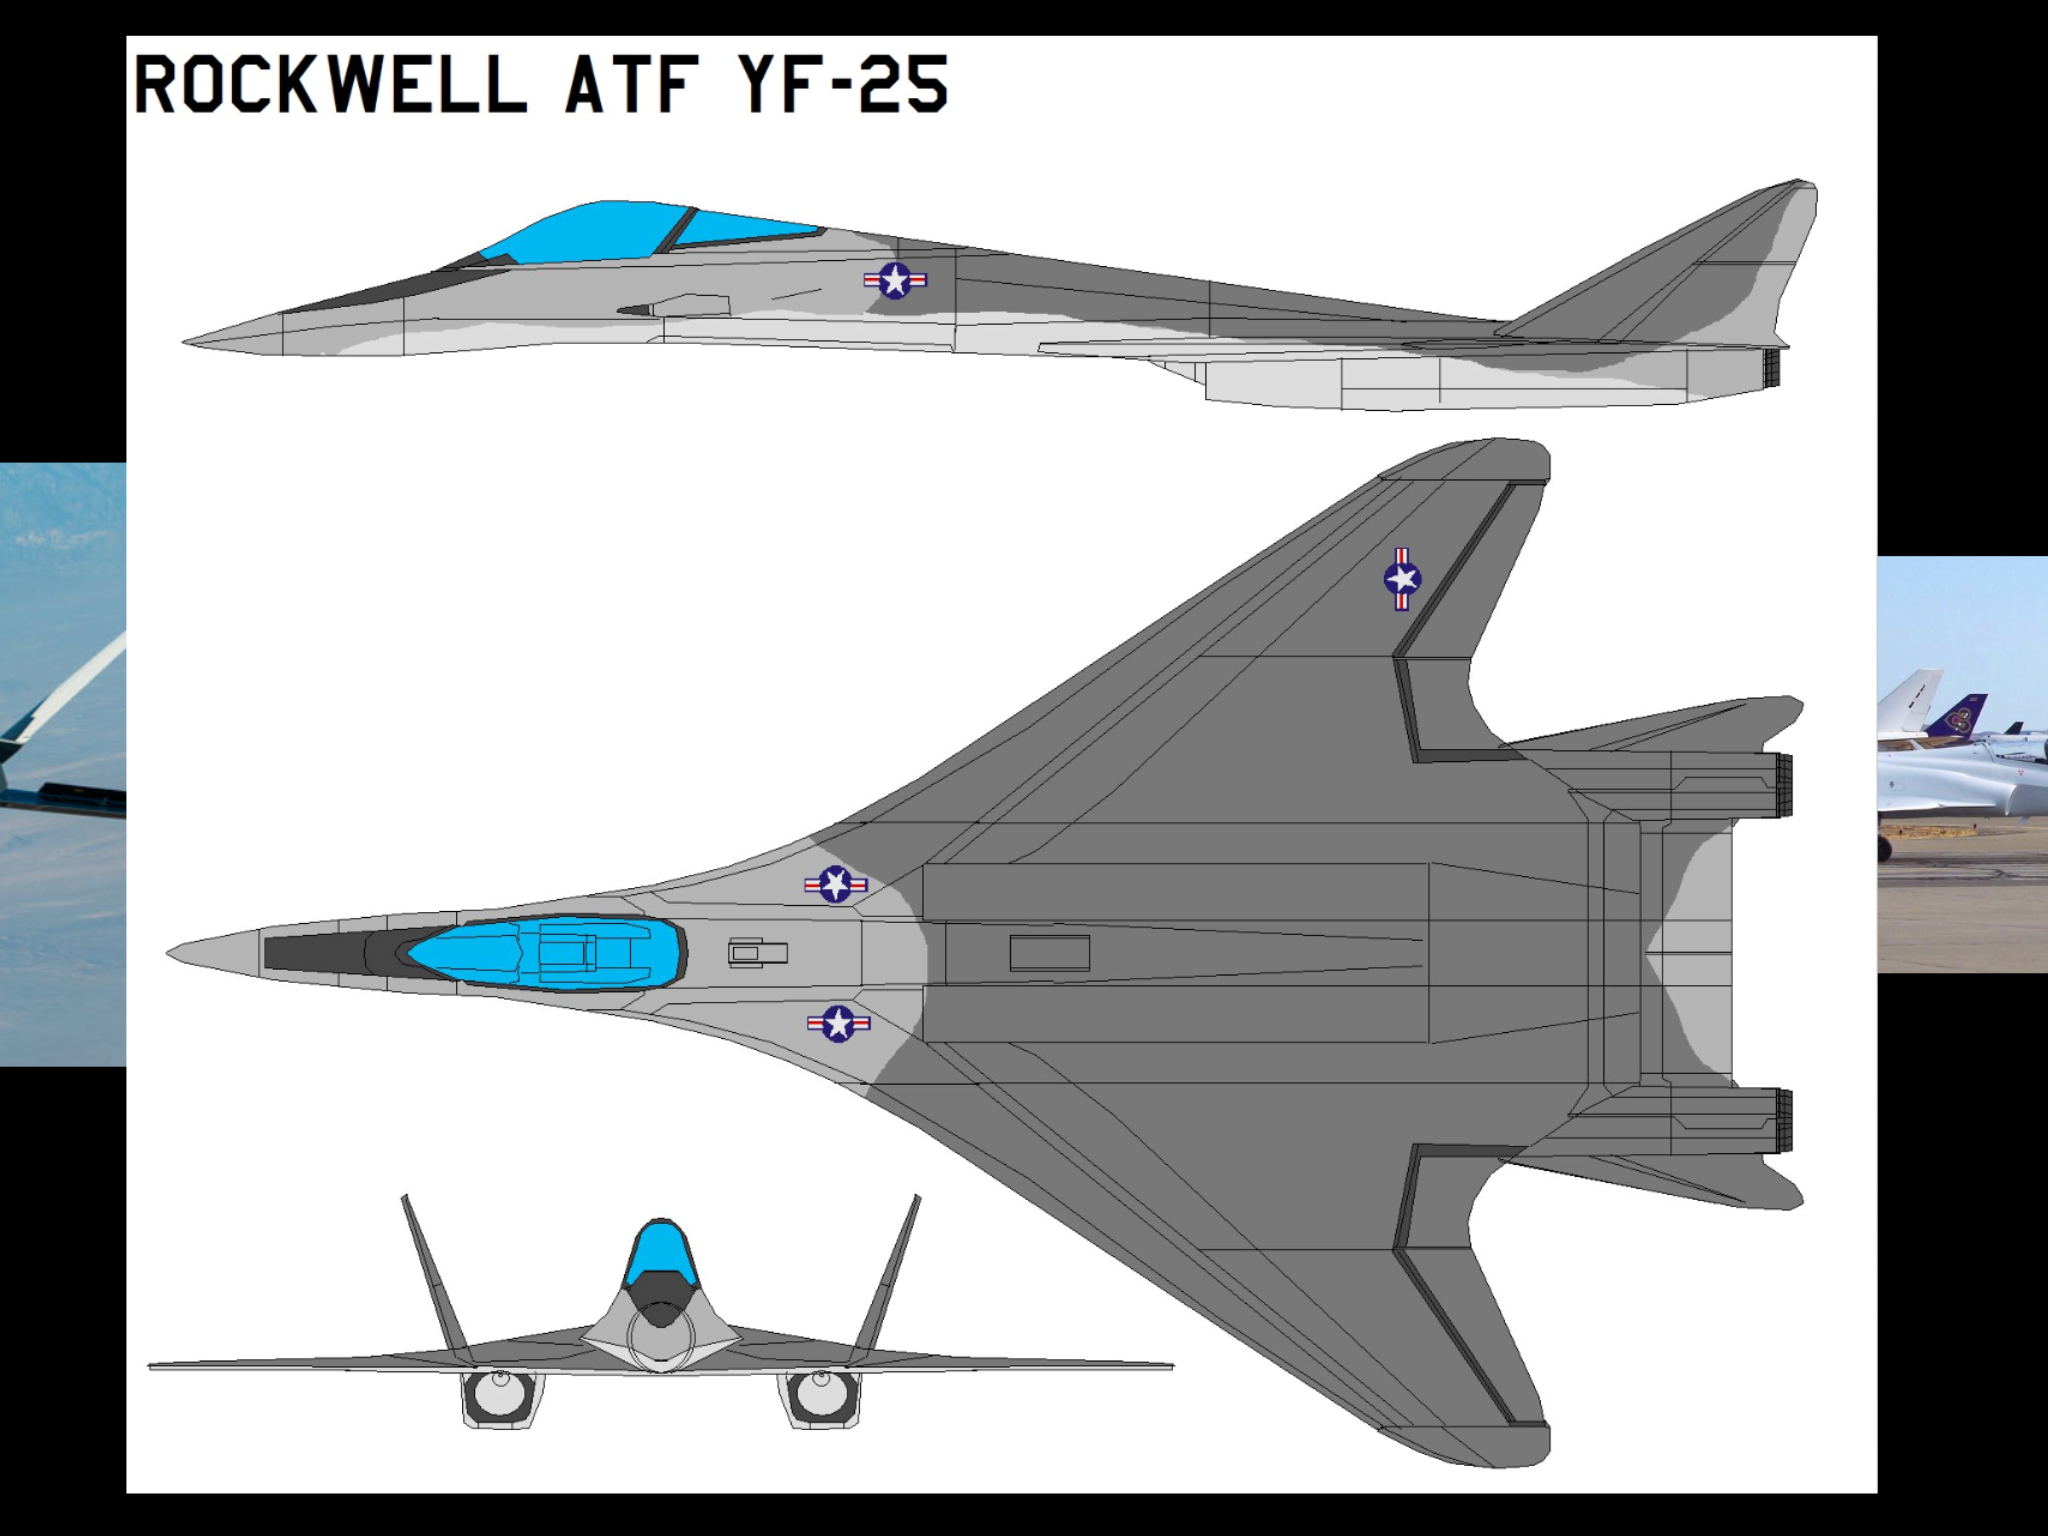 Rockwell ATF concept